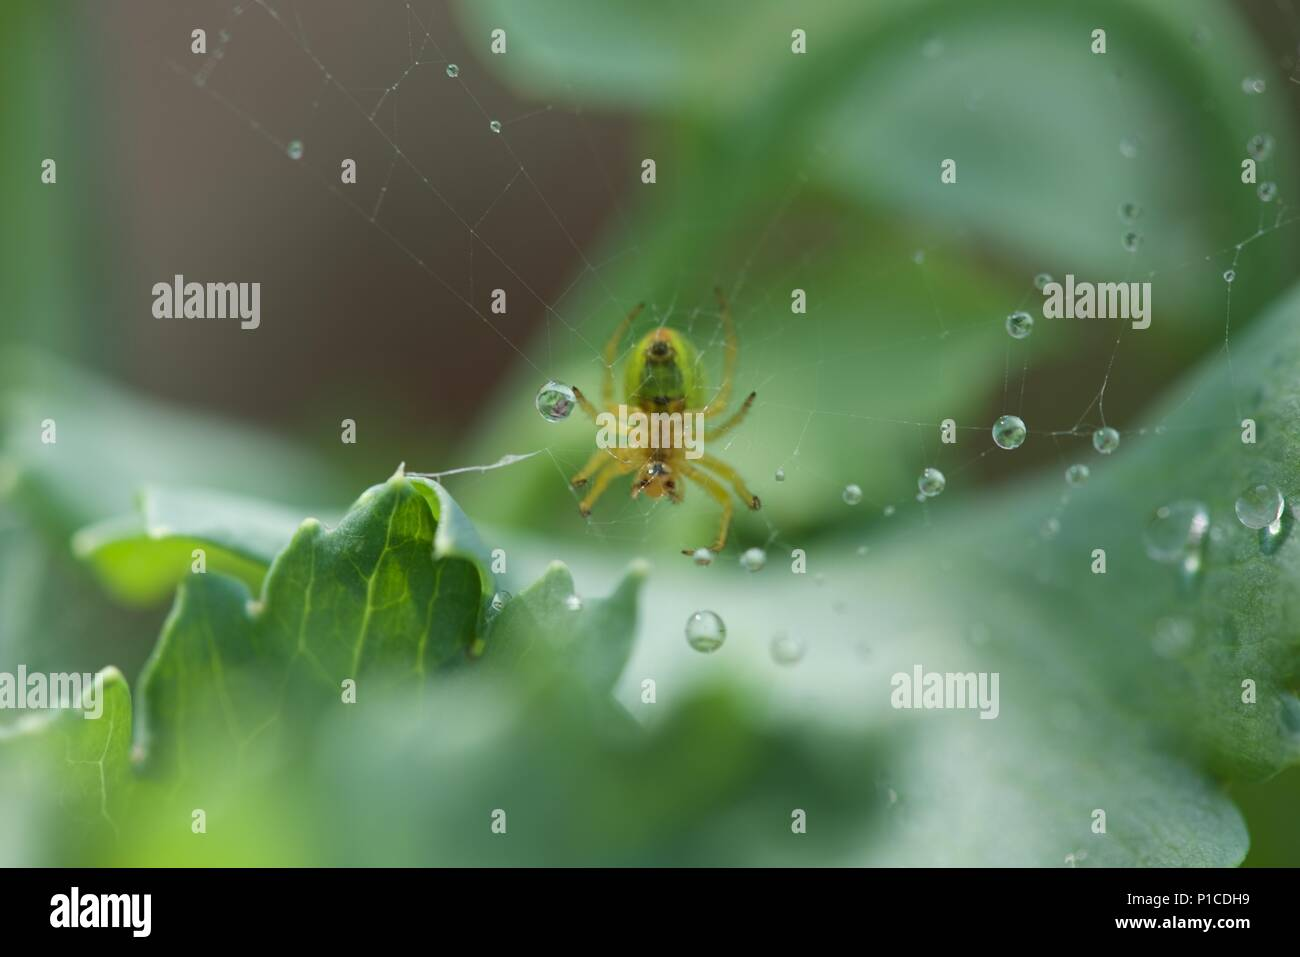 Water: beads of rain water rest in the web of a small spider (Araniella cucurbitina) surrounded by green foliage - Stock Image